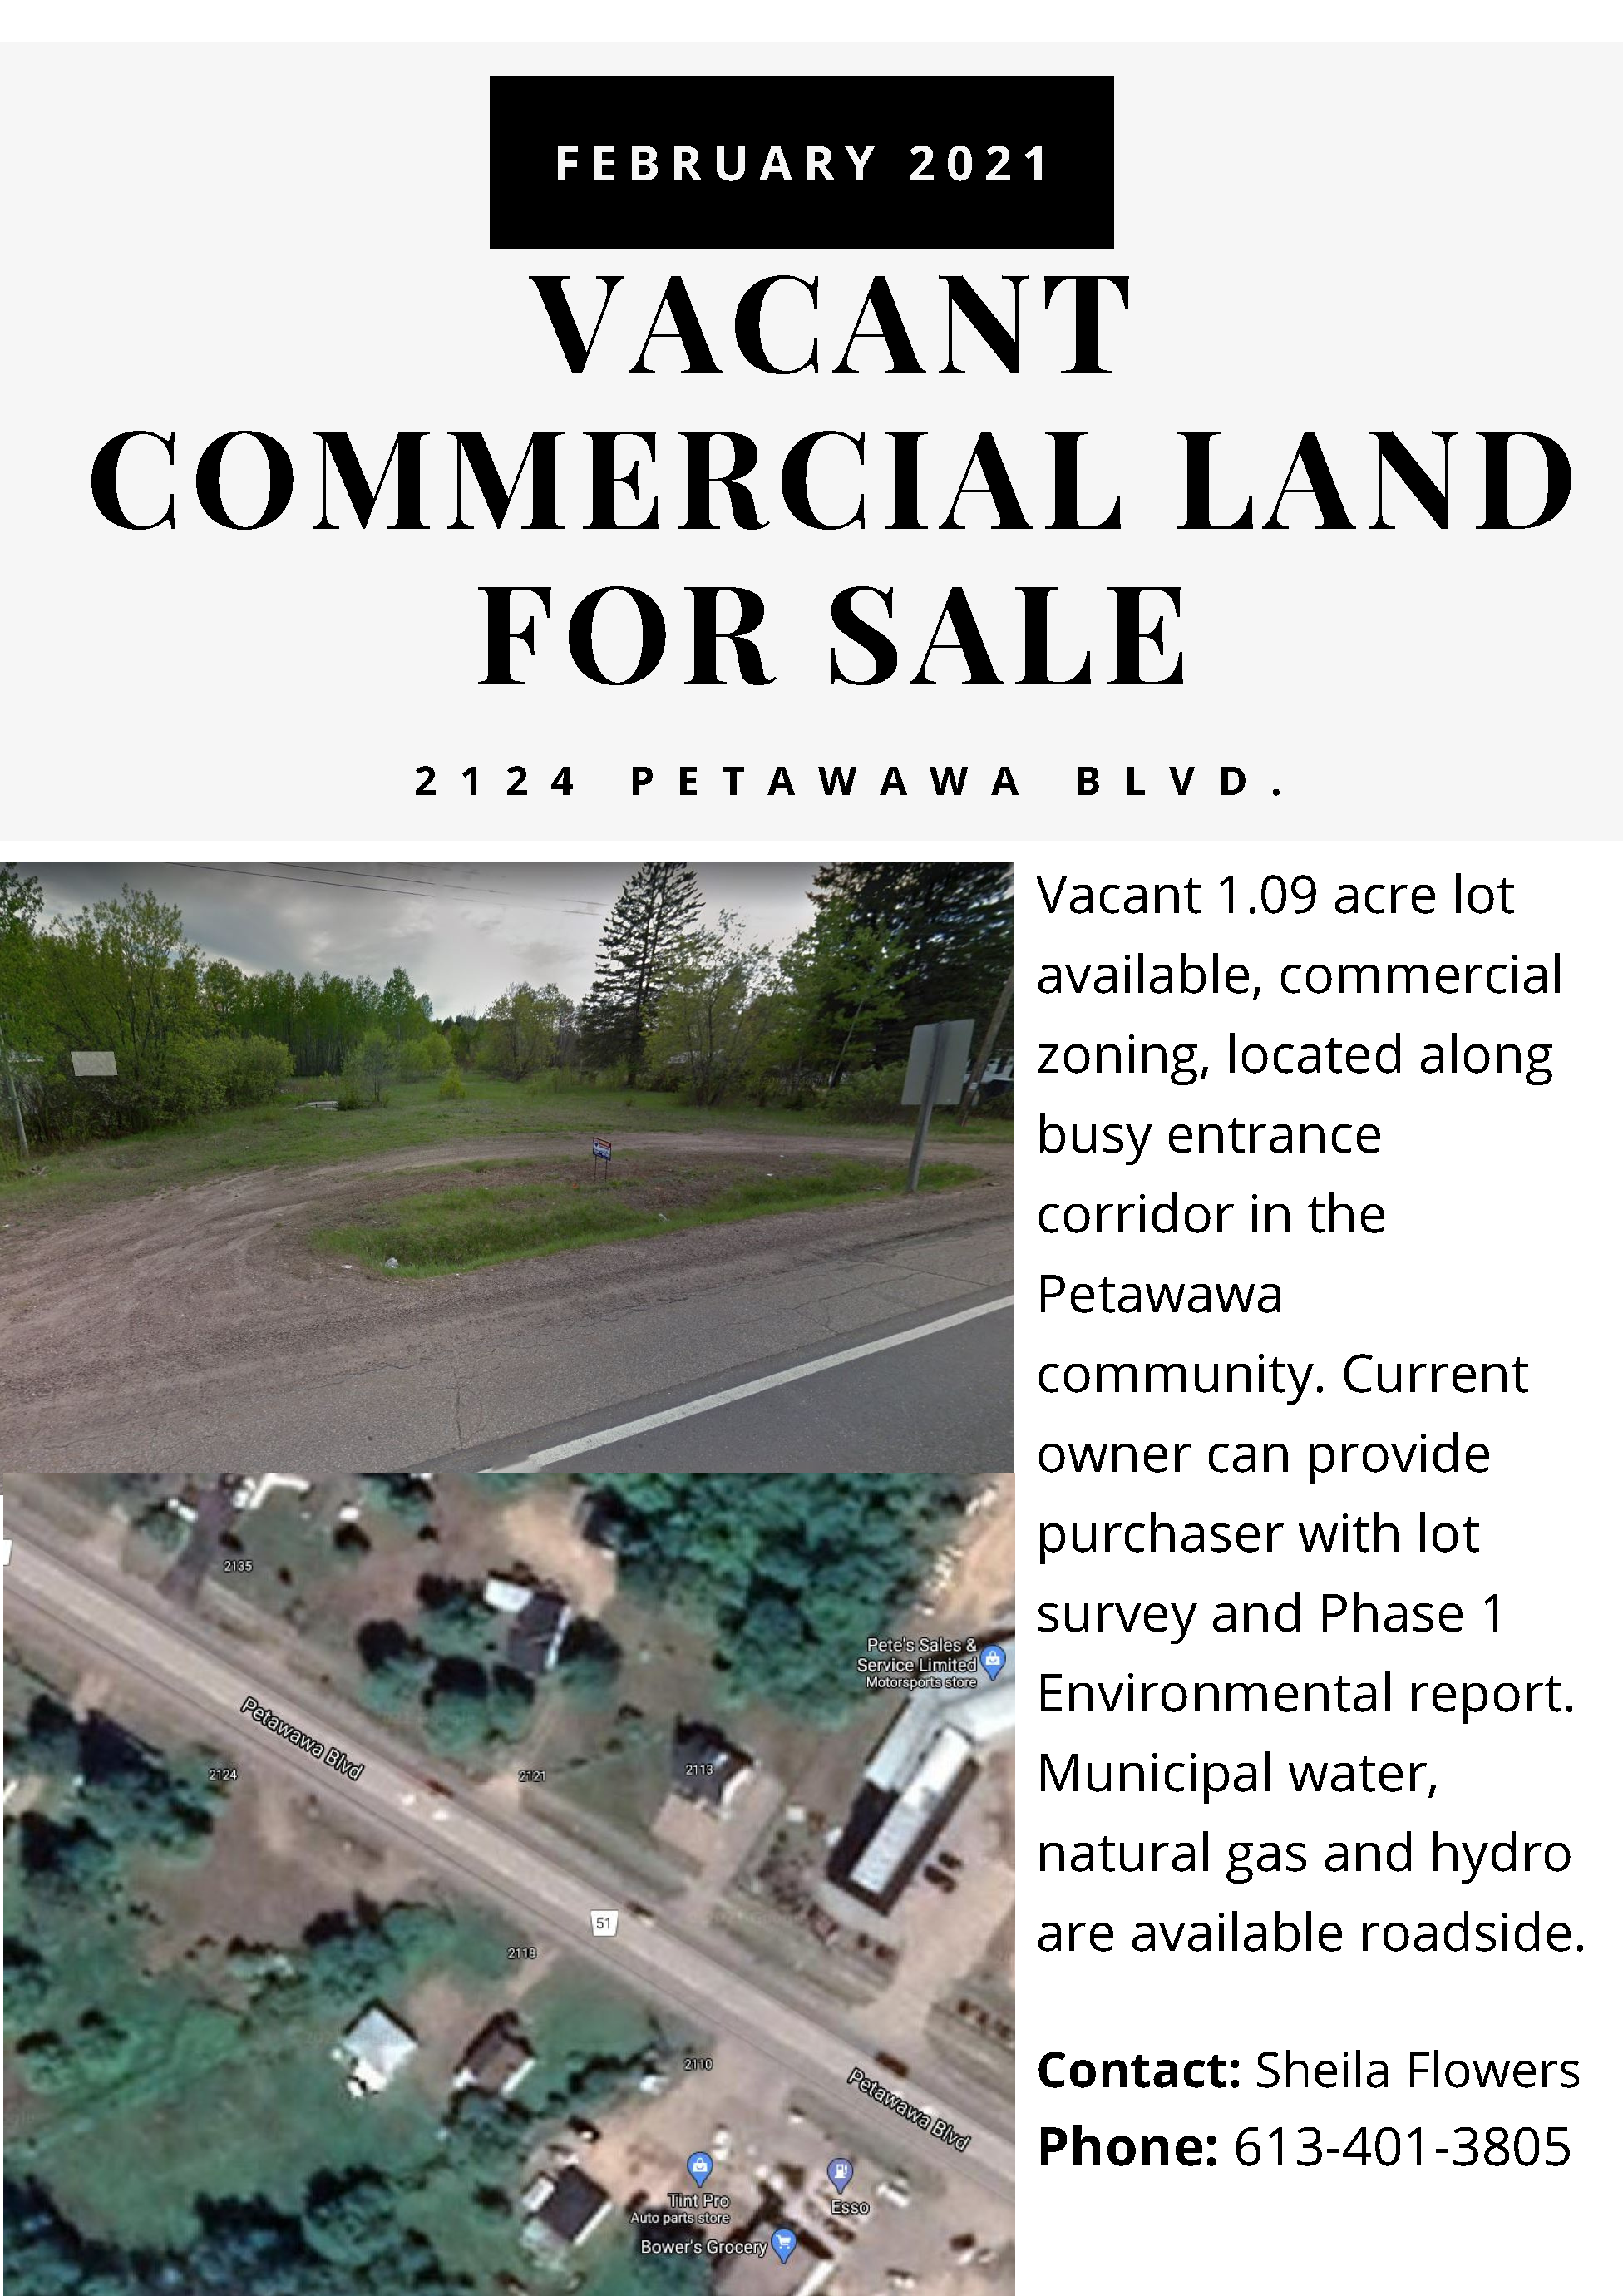 A sales advertisement for 2124 Petawawa Blvd.